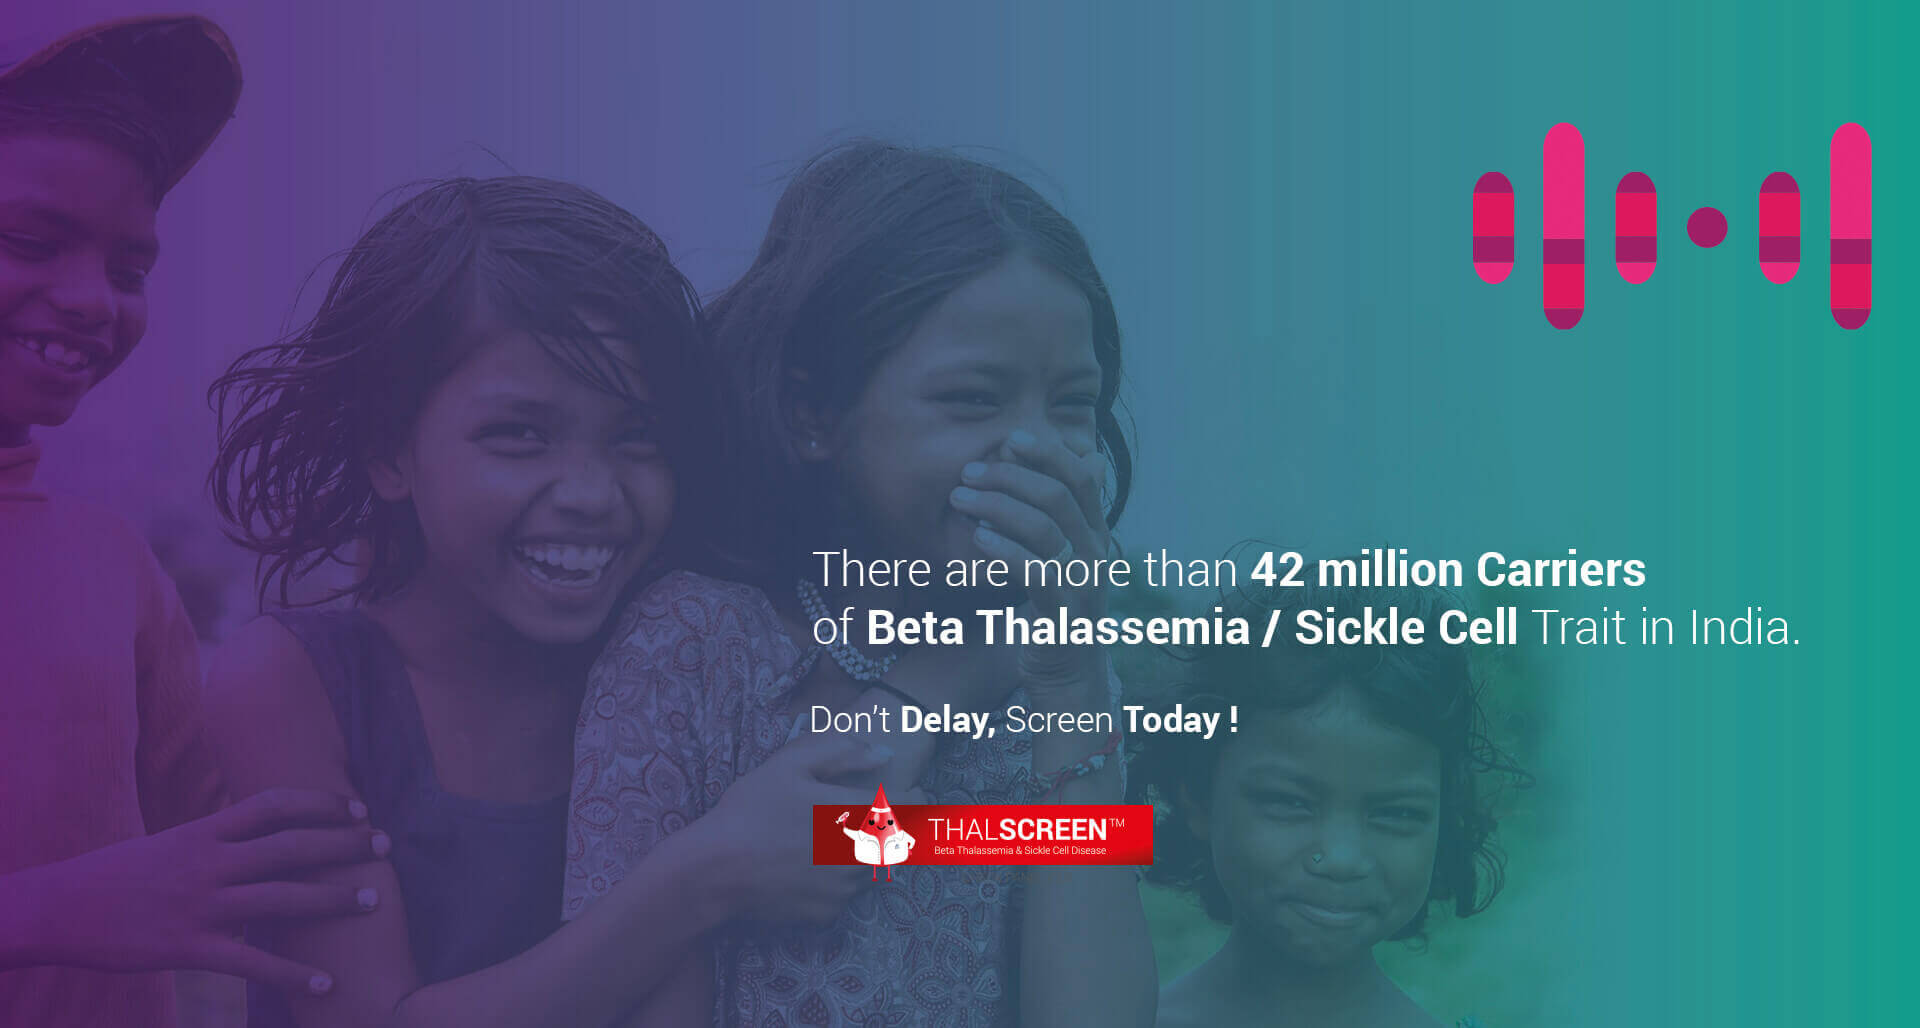 beta-thalassemia-sickle-cell-screening